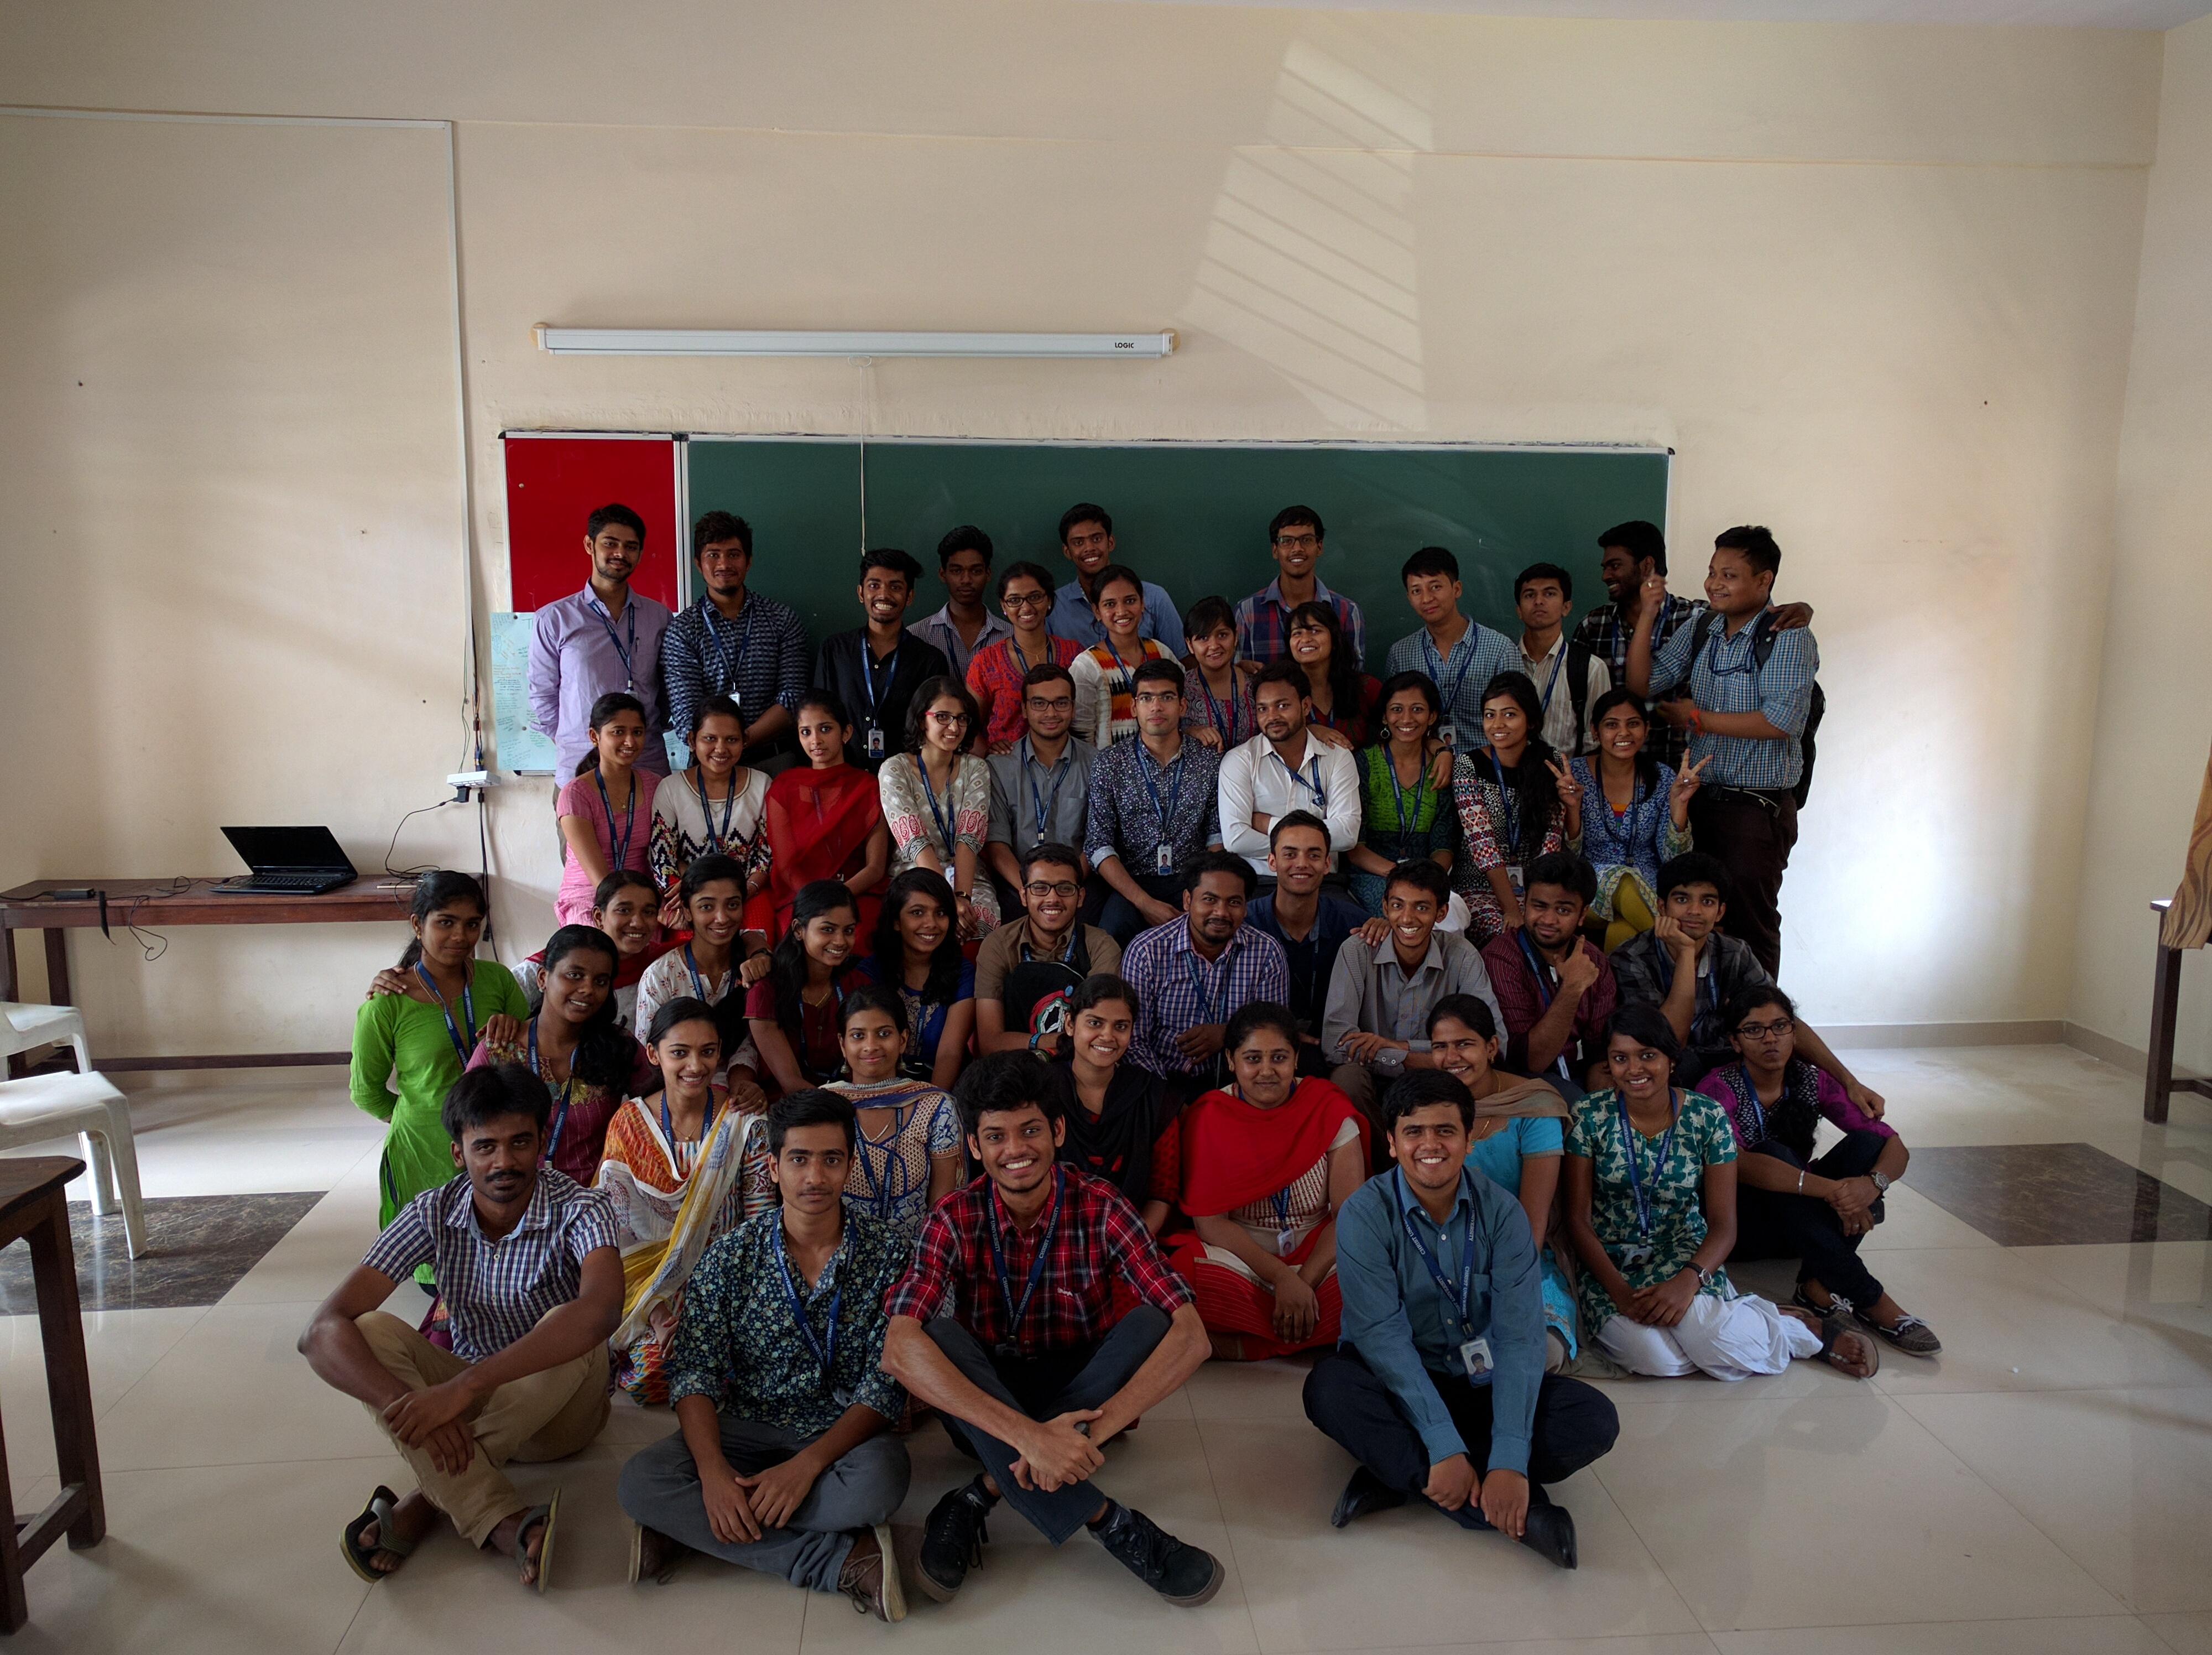 Christ Bsc pcm 2014-17(1).jpg English: Christ university second year students group photo Date 22 March 2016, 12:31:34 Source Own work Author